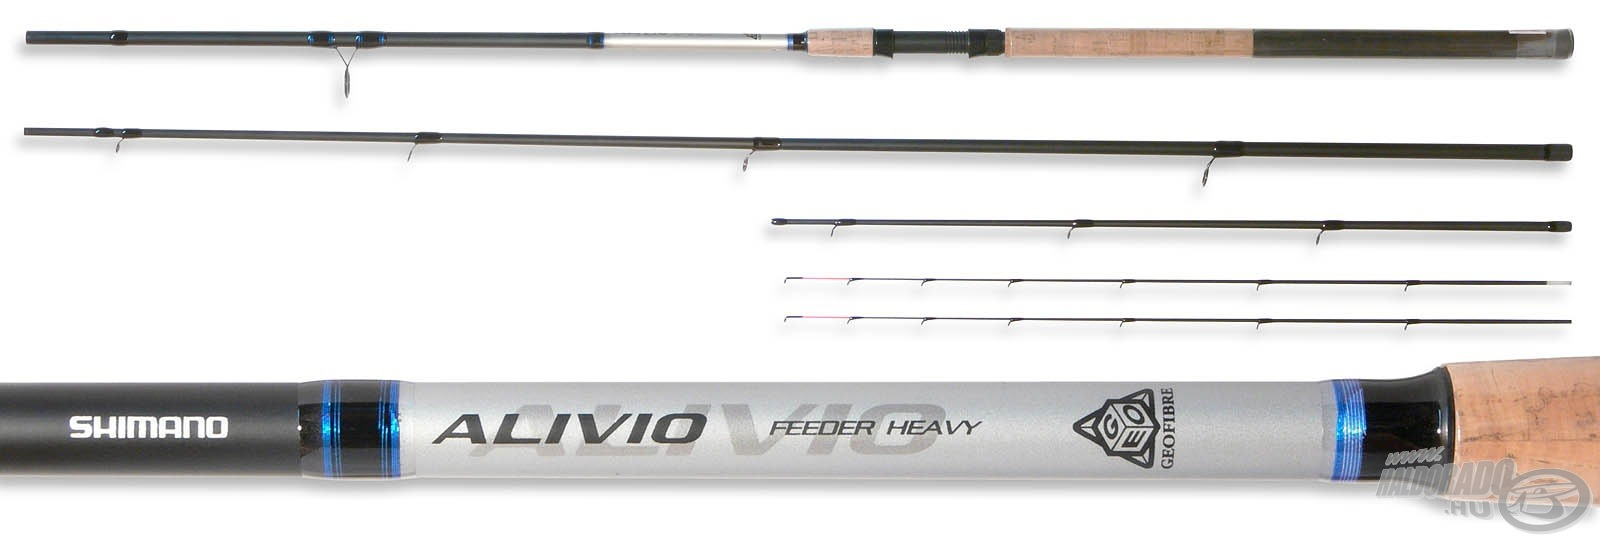 SHIMANO Alivio CX 390 Heavy feeder 24990 helyett 16990Ft